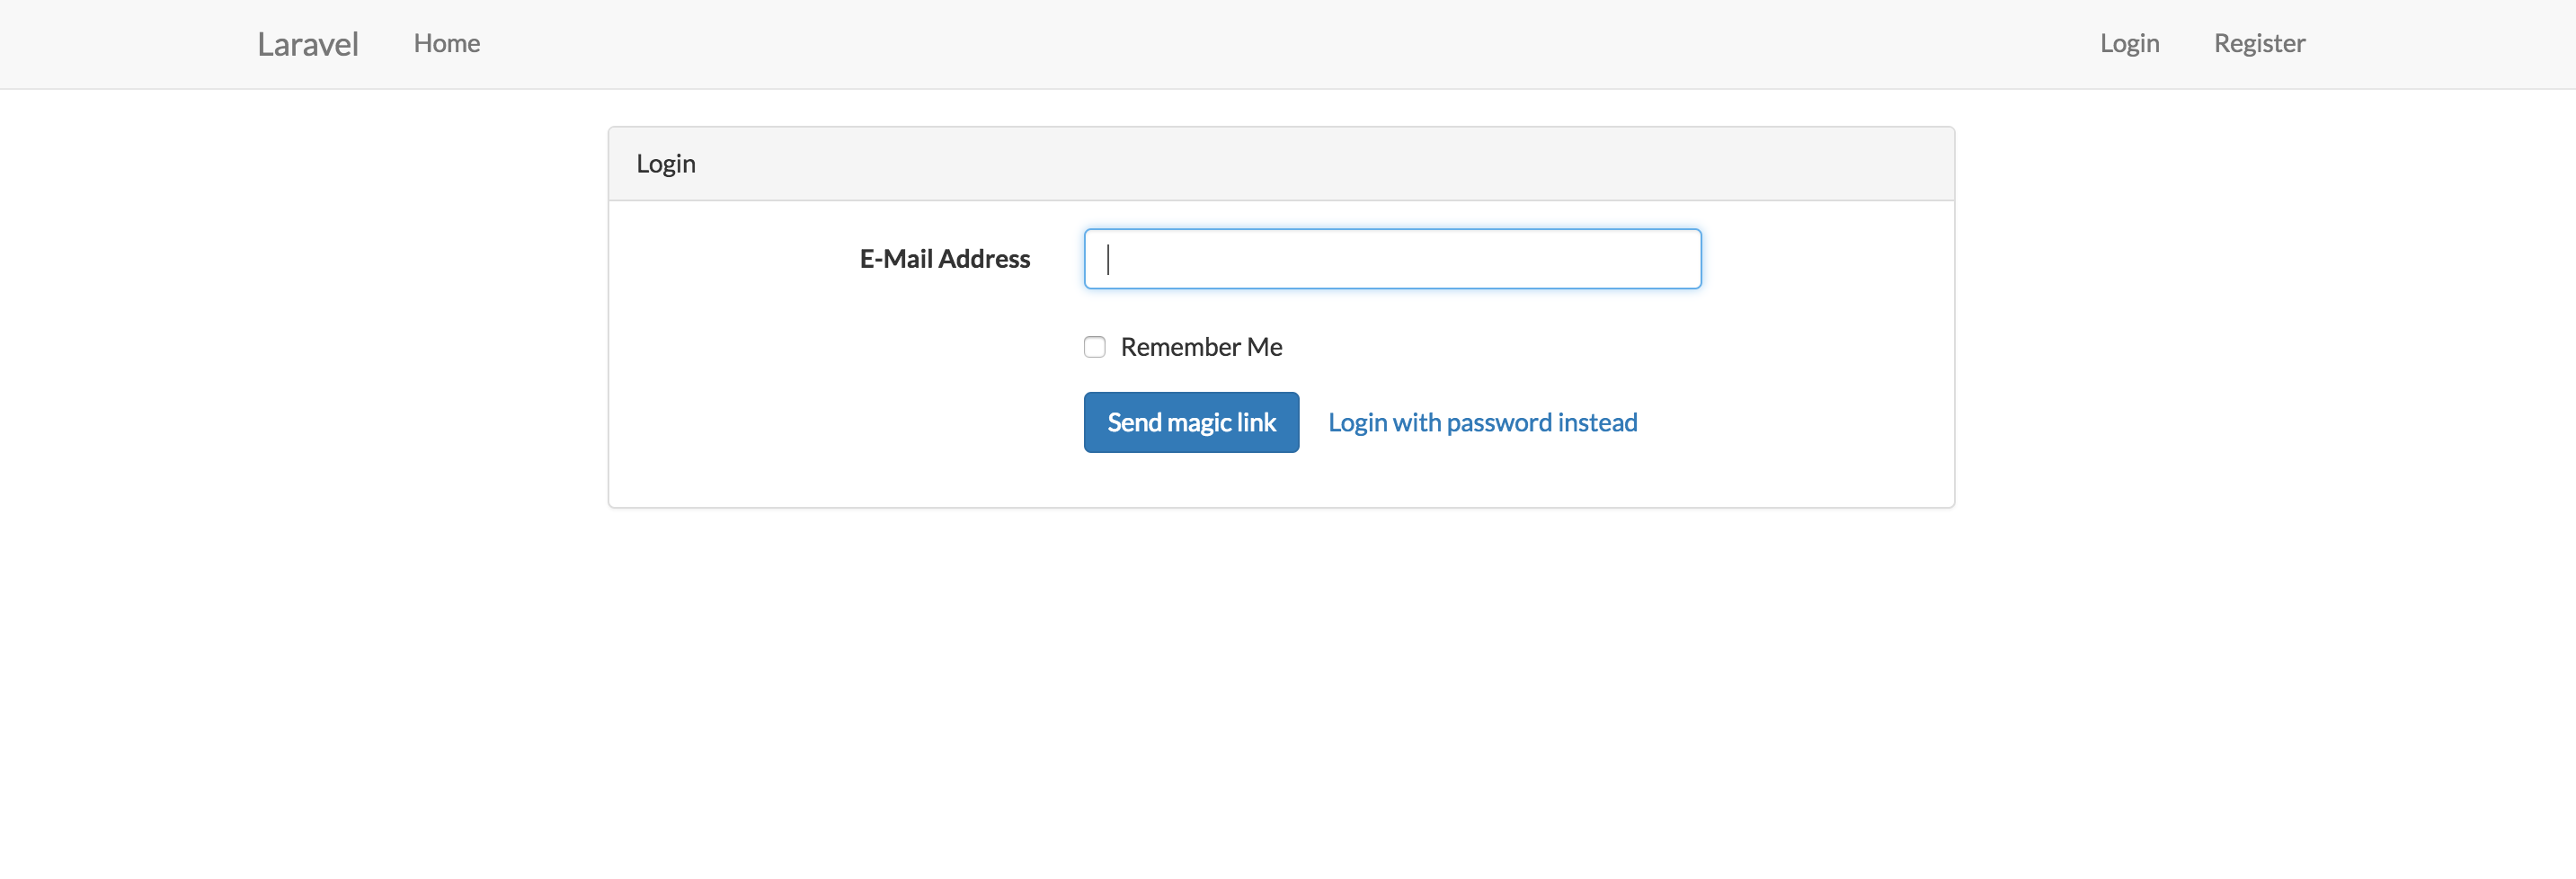 Example of view with login form